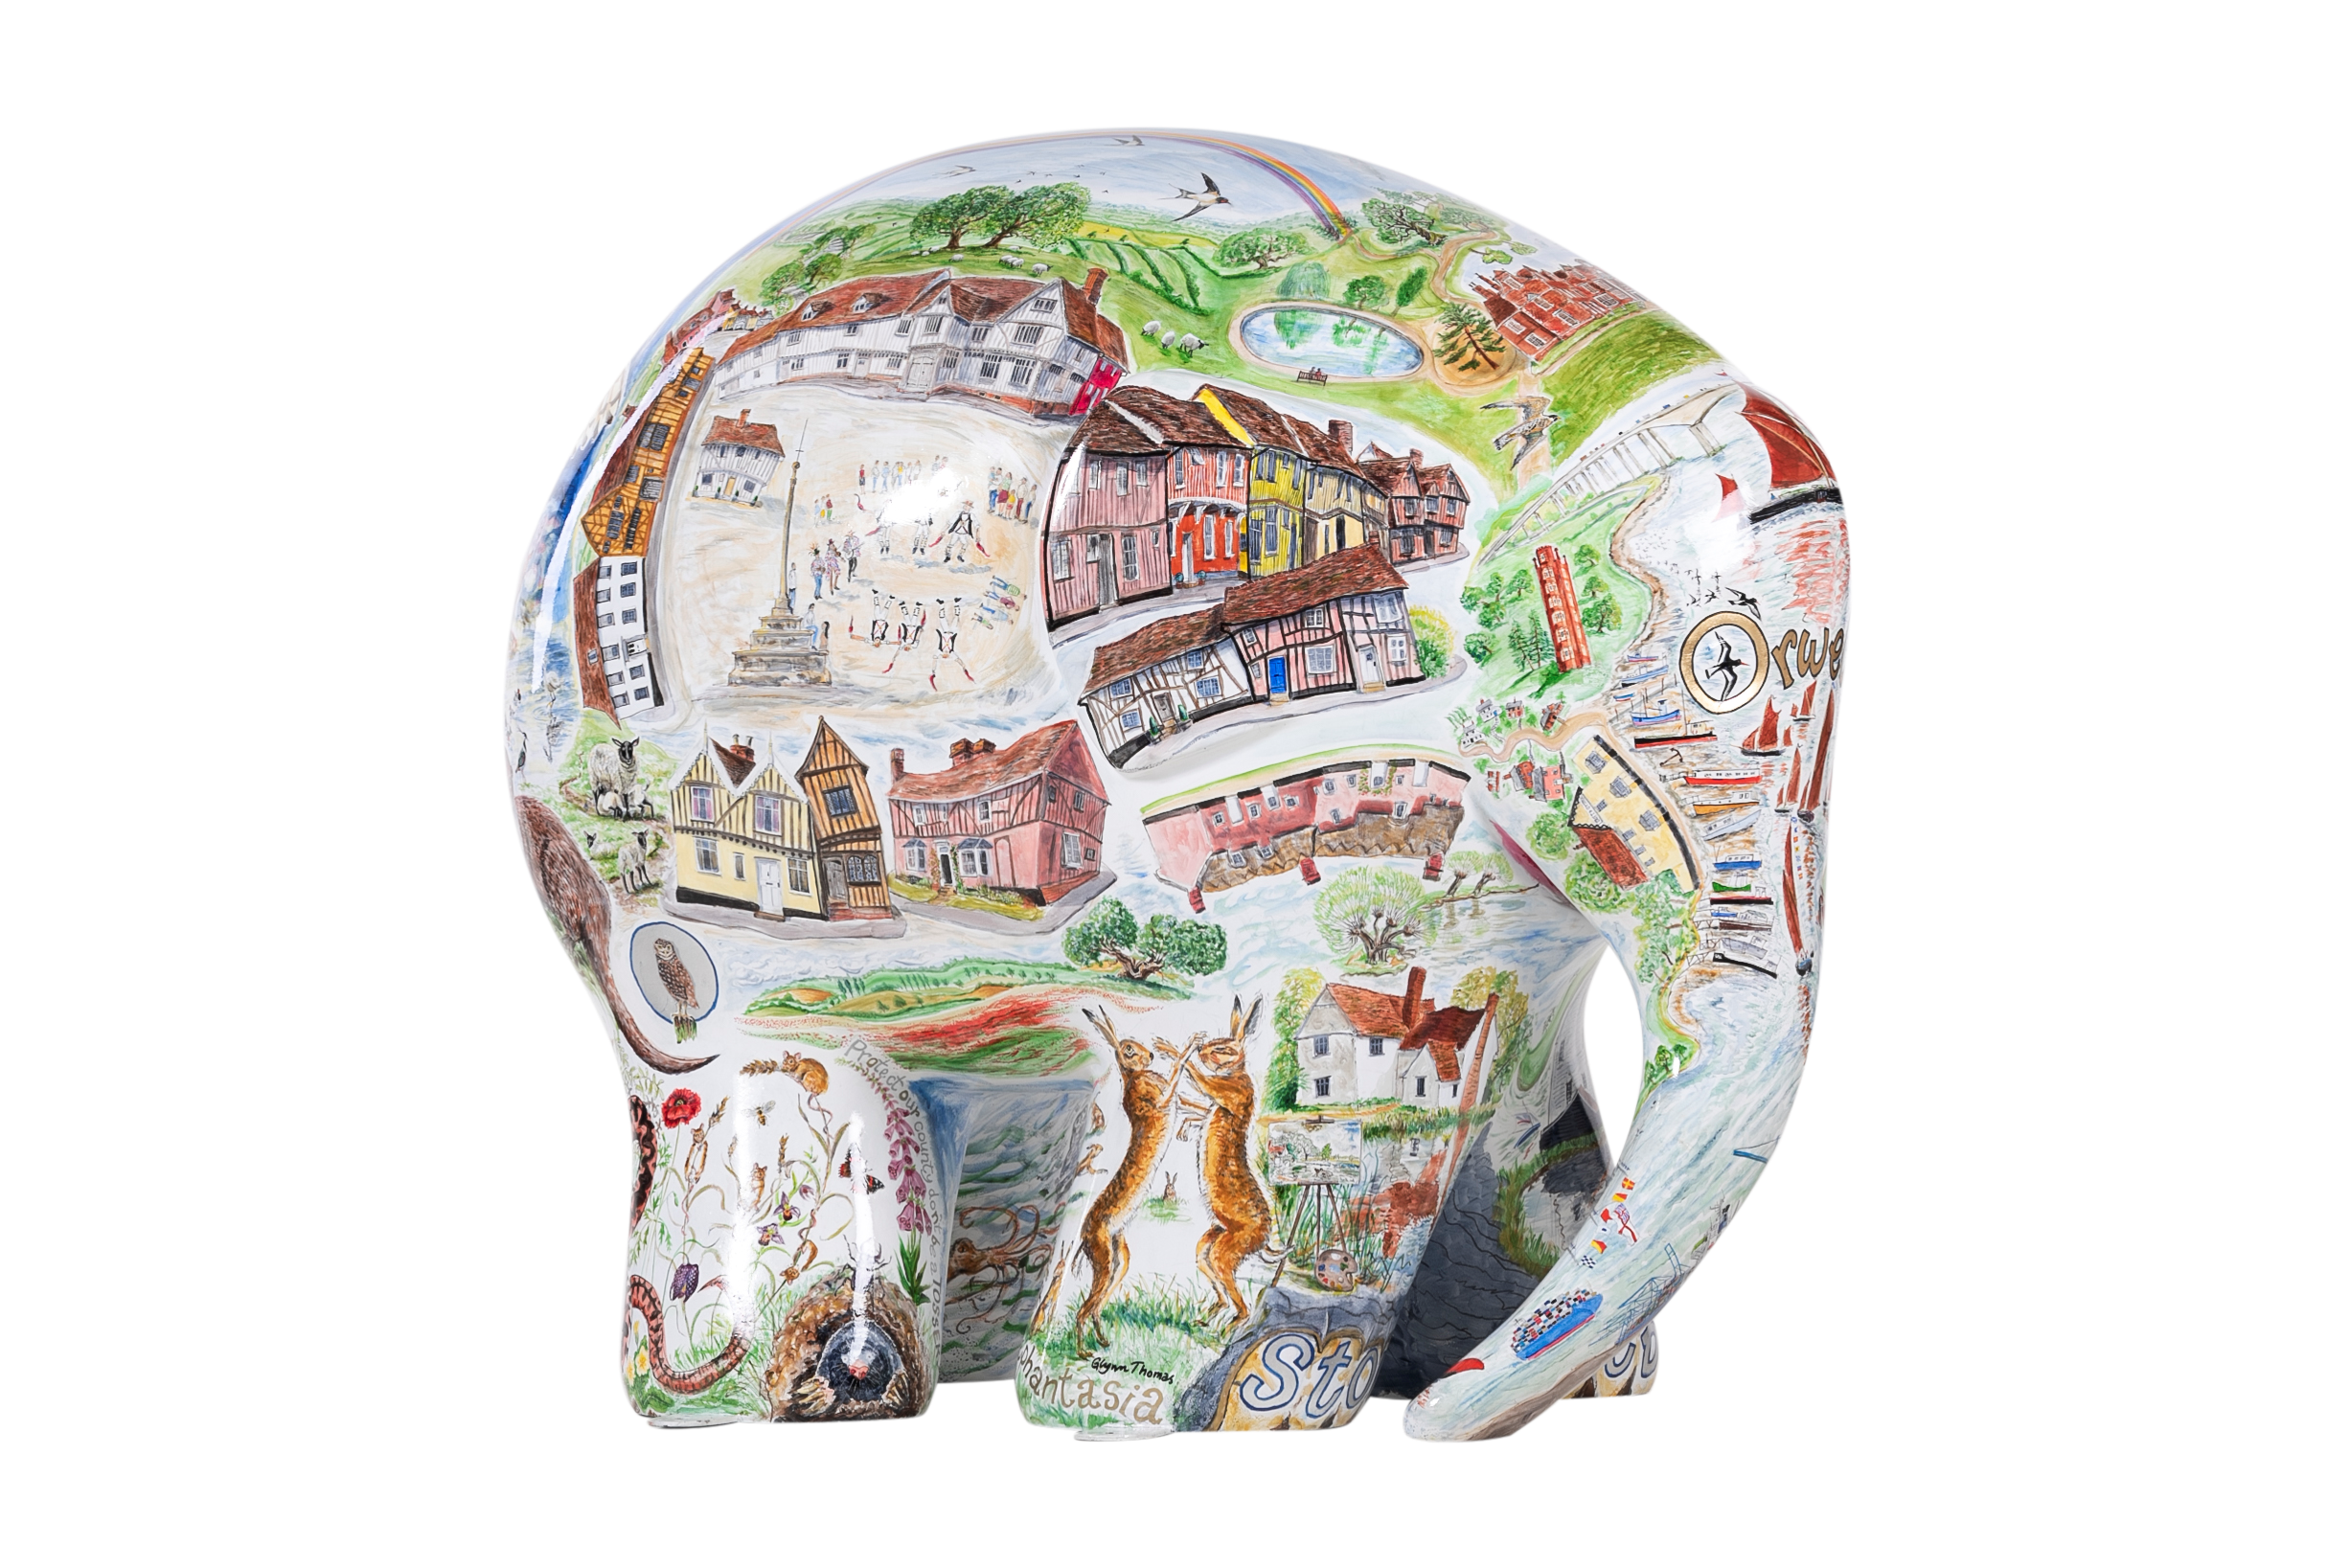 Suffolk Elephantasia by Glynn Thomas RE. Sponsored by Gotelee Solicitors. - Image 2 of 5